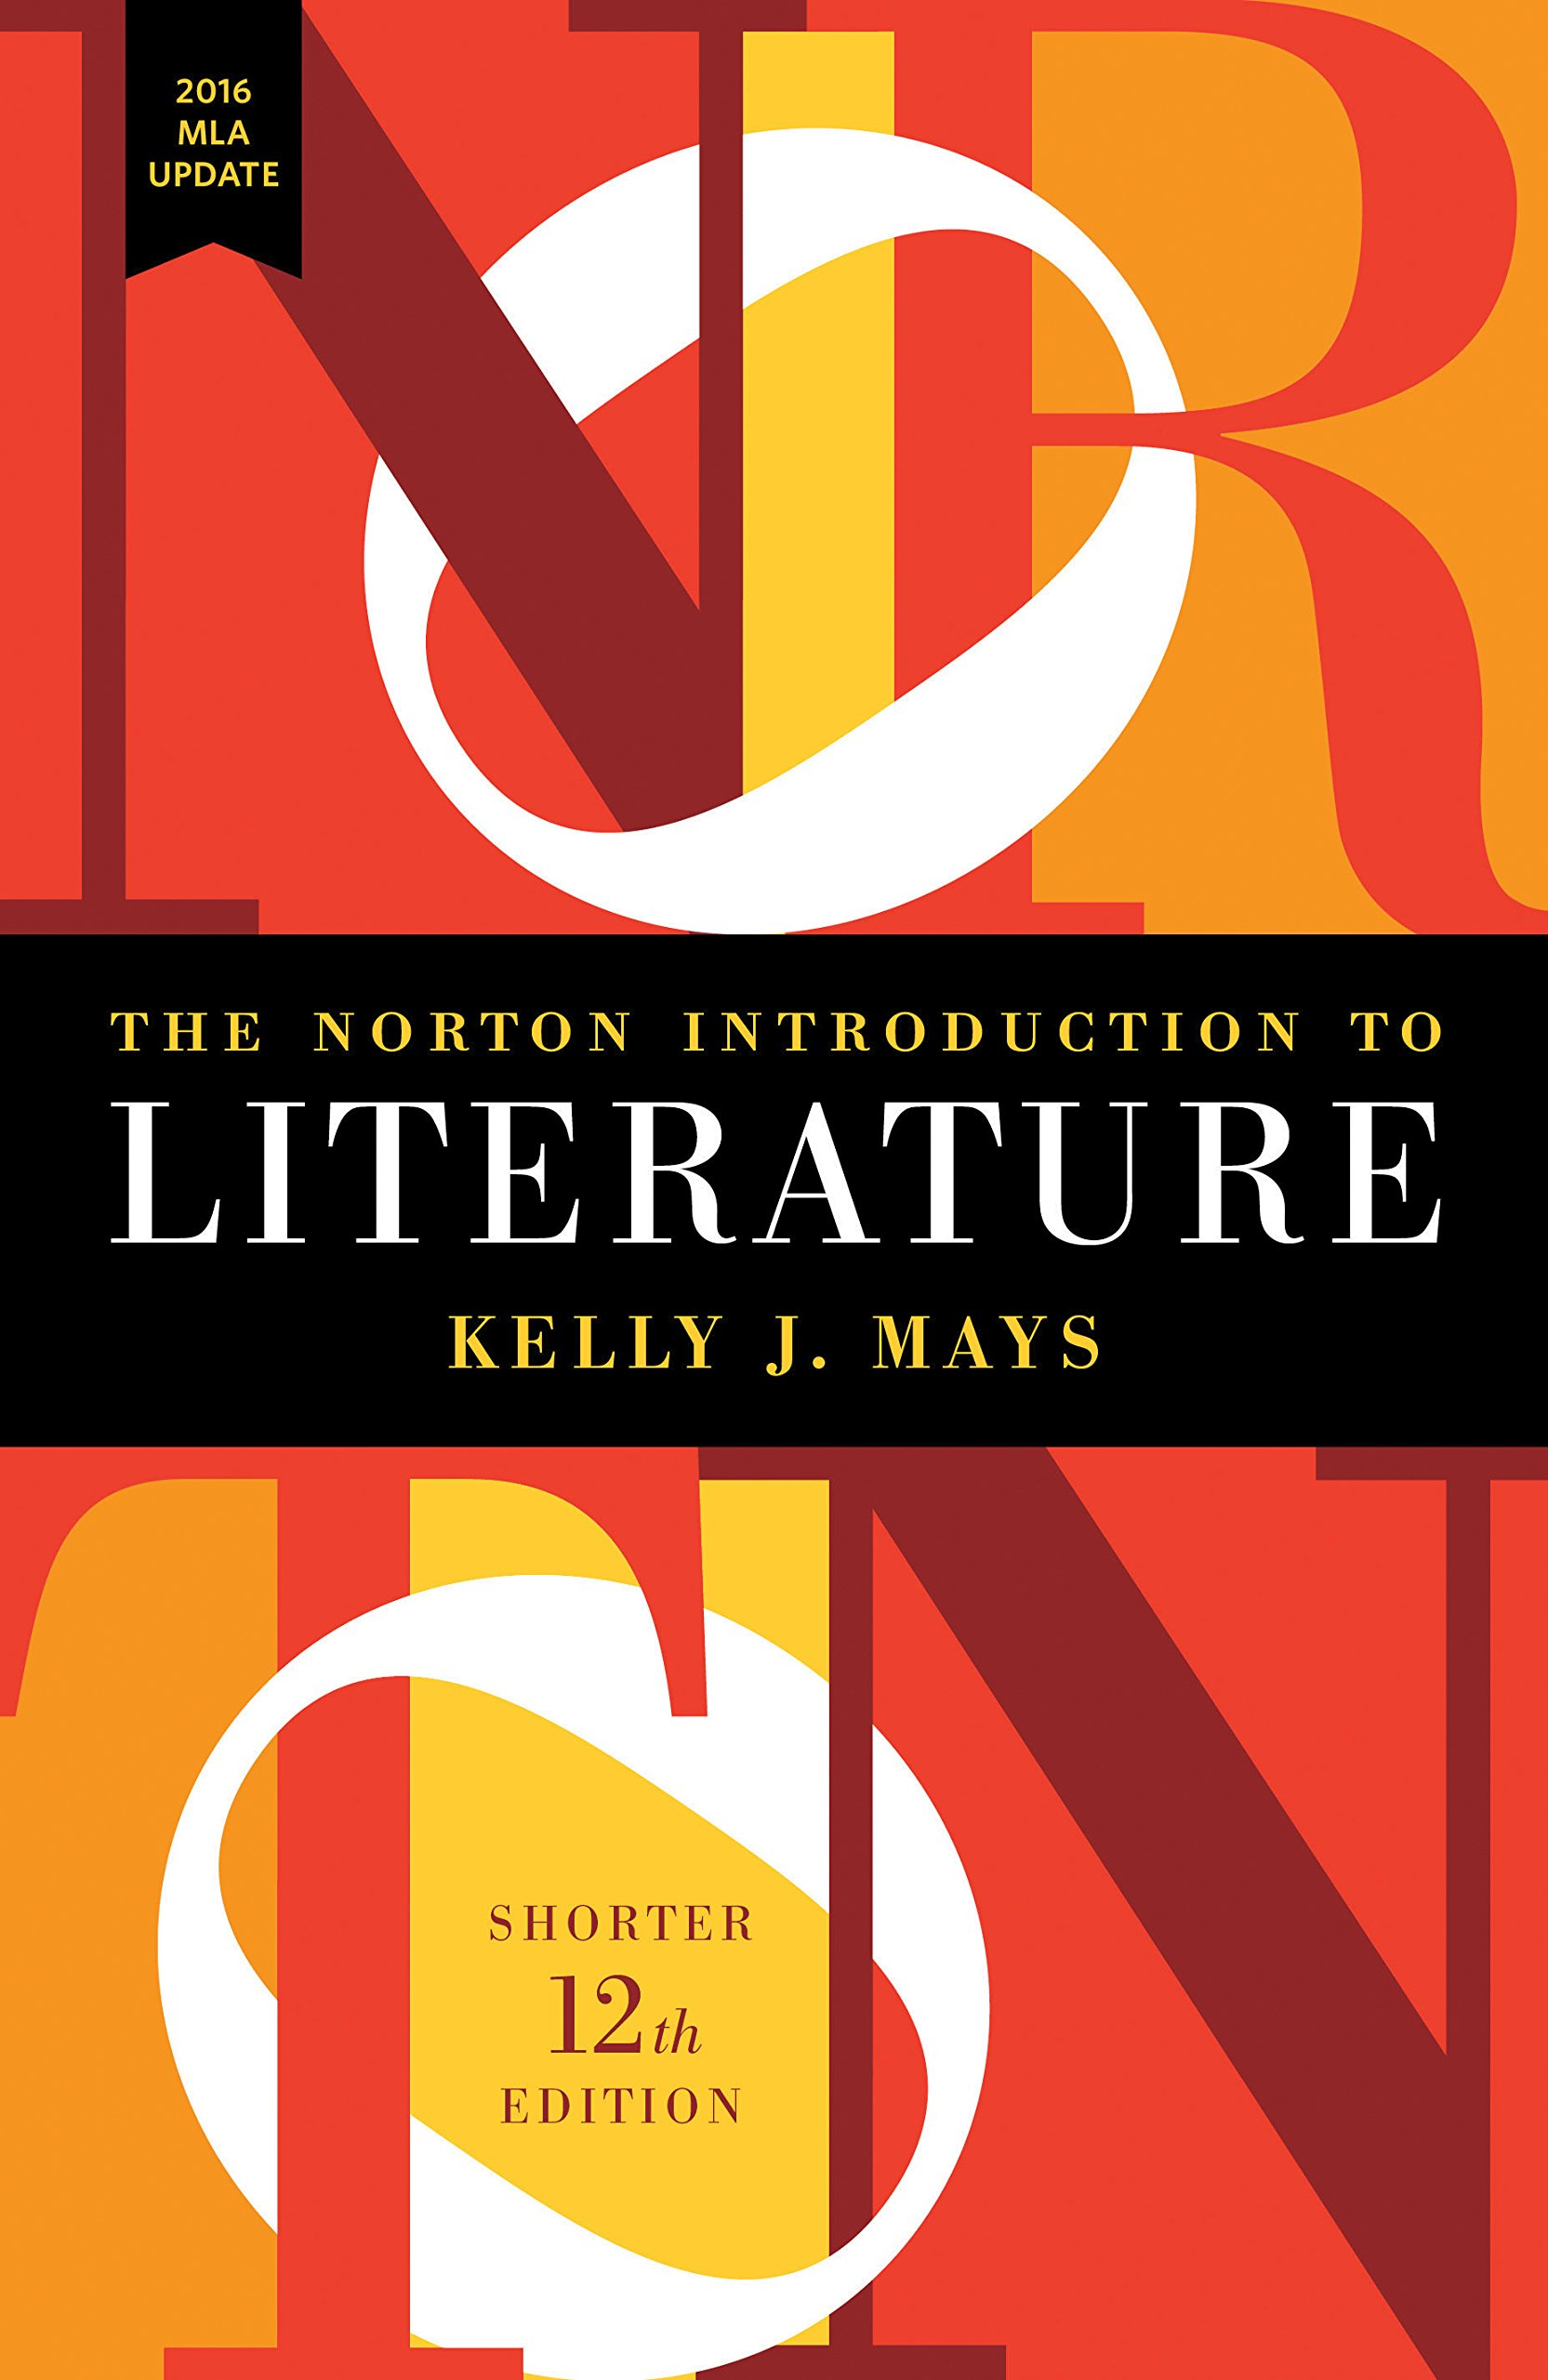 The Norton Introduction to Literature with 2016 MLA Update (Shorter Twelfth Edition)